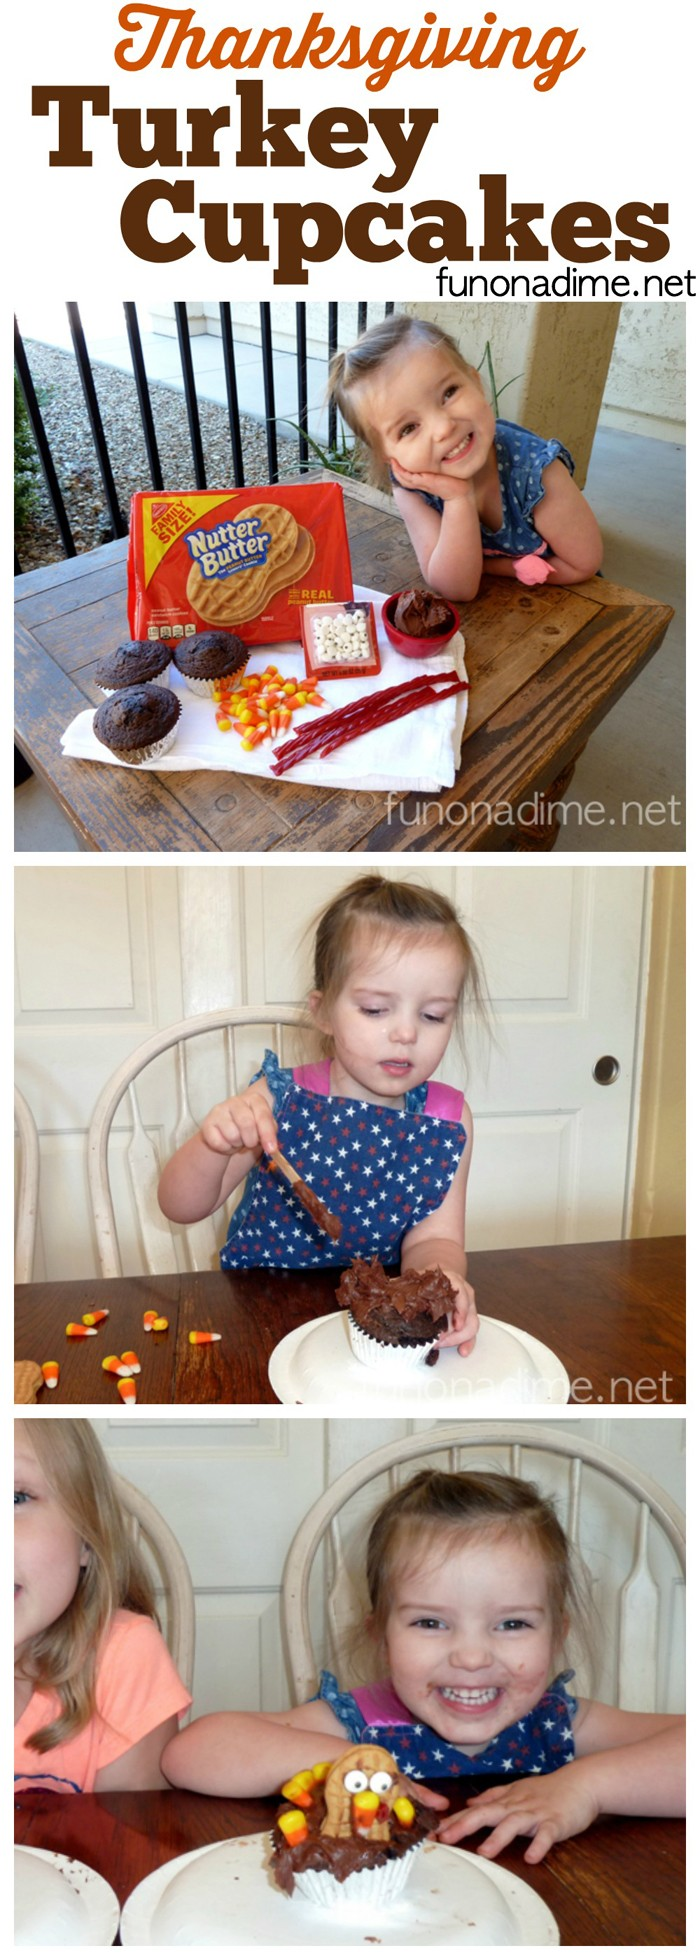 Thanksgiving Turkey Cupcakes - fun for all ages including toddlers